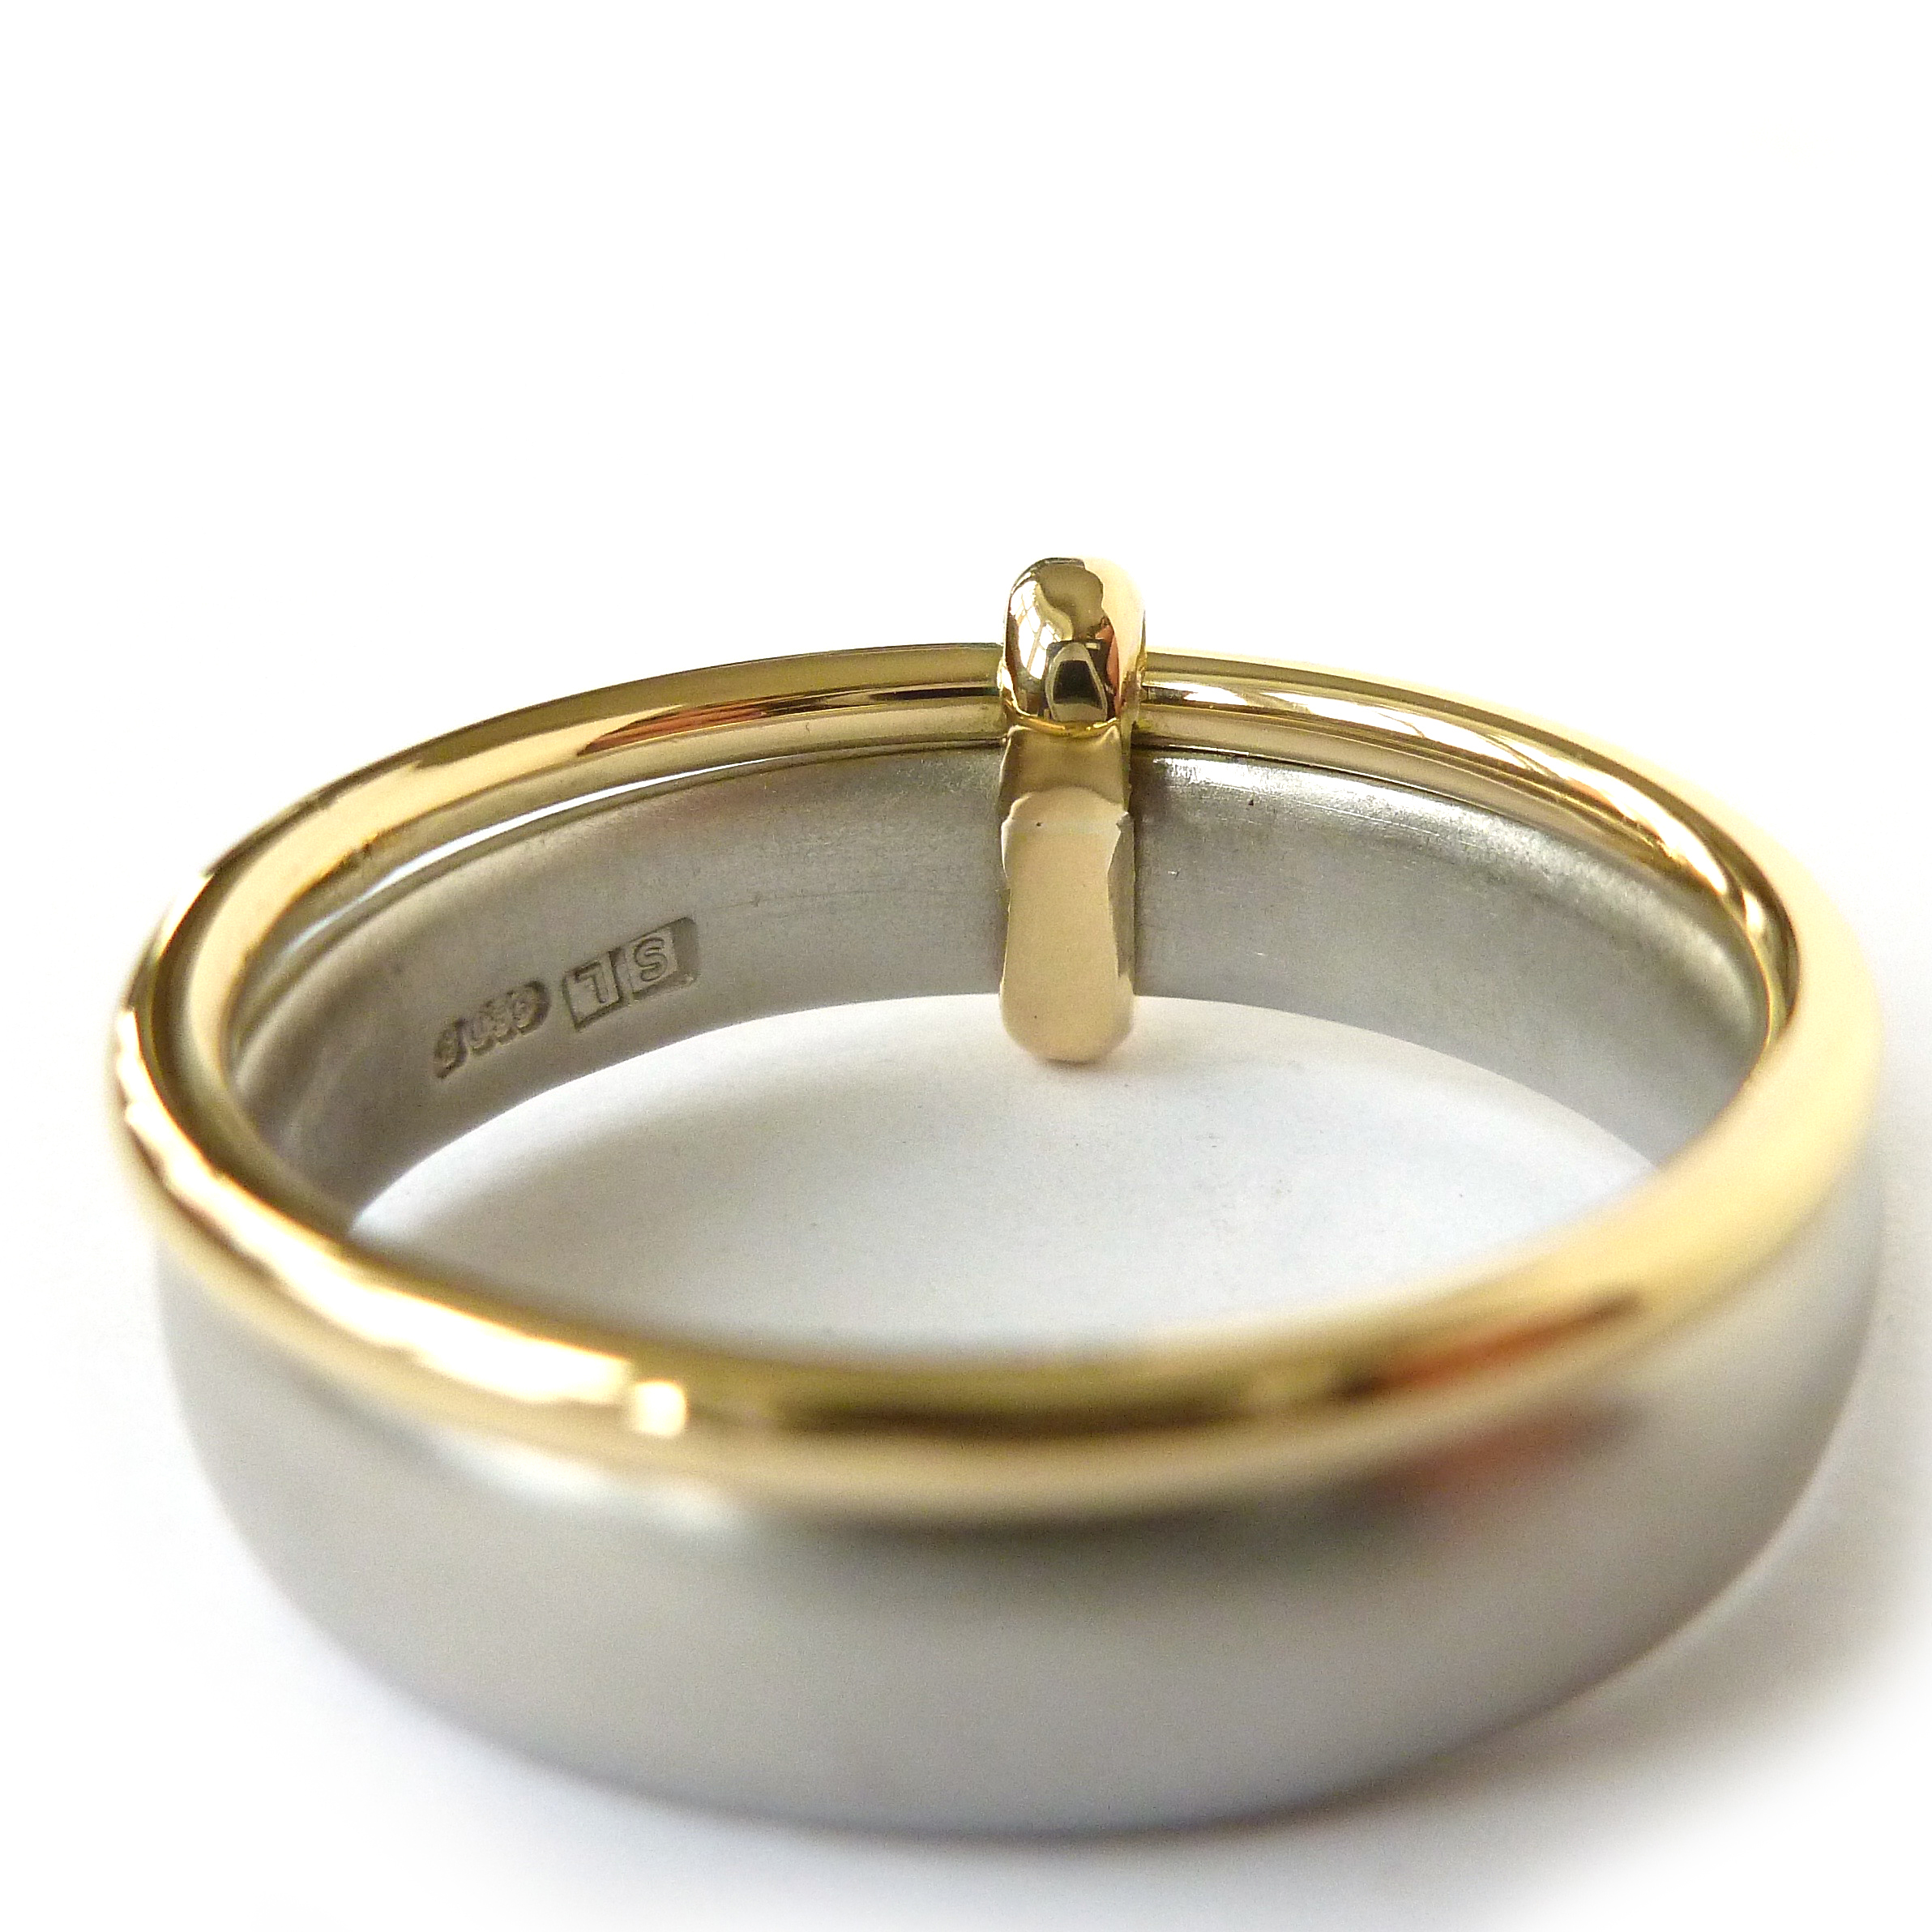 gold ring ringscollection man com buy details from rings sapphire etsy statement now ori